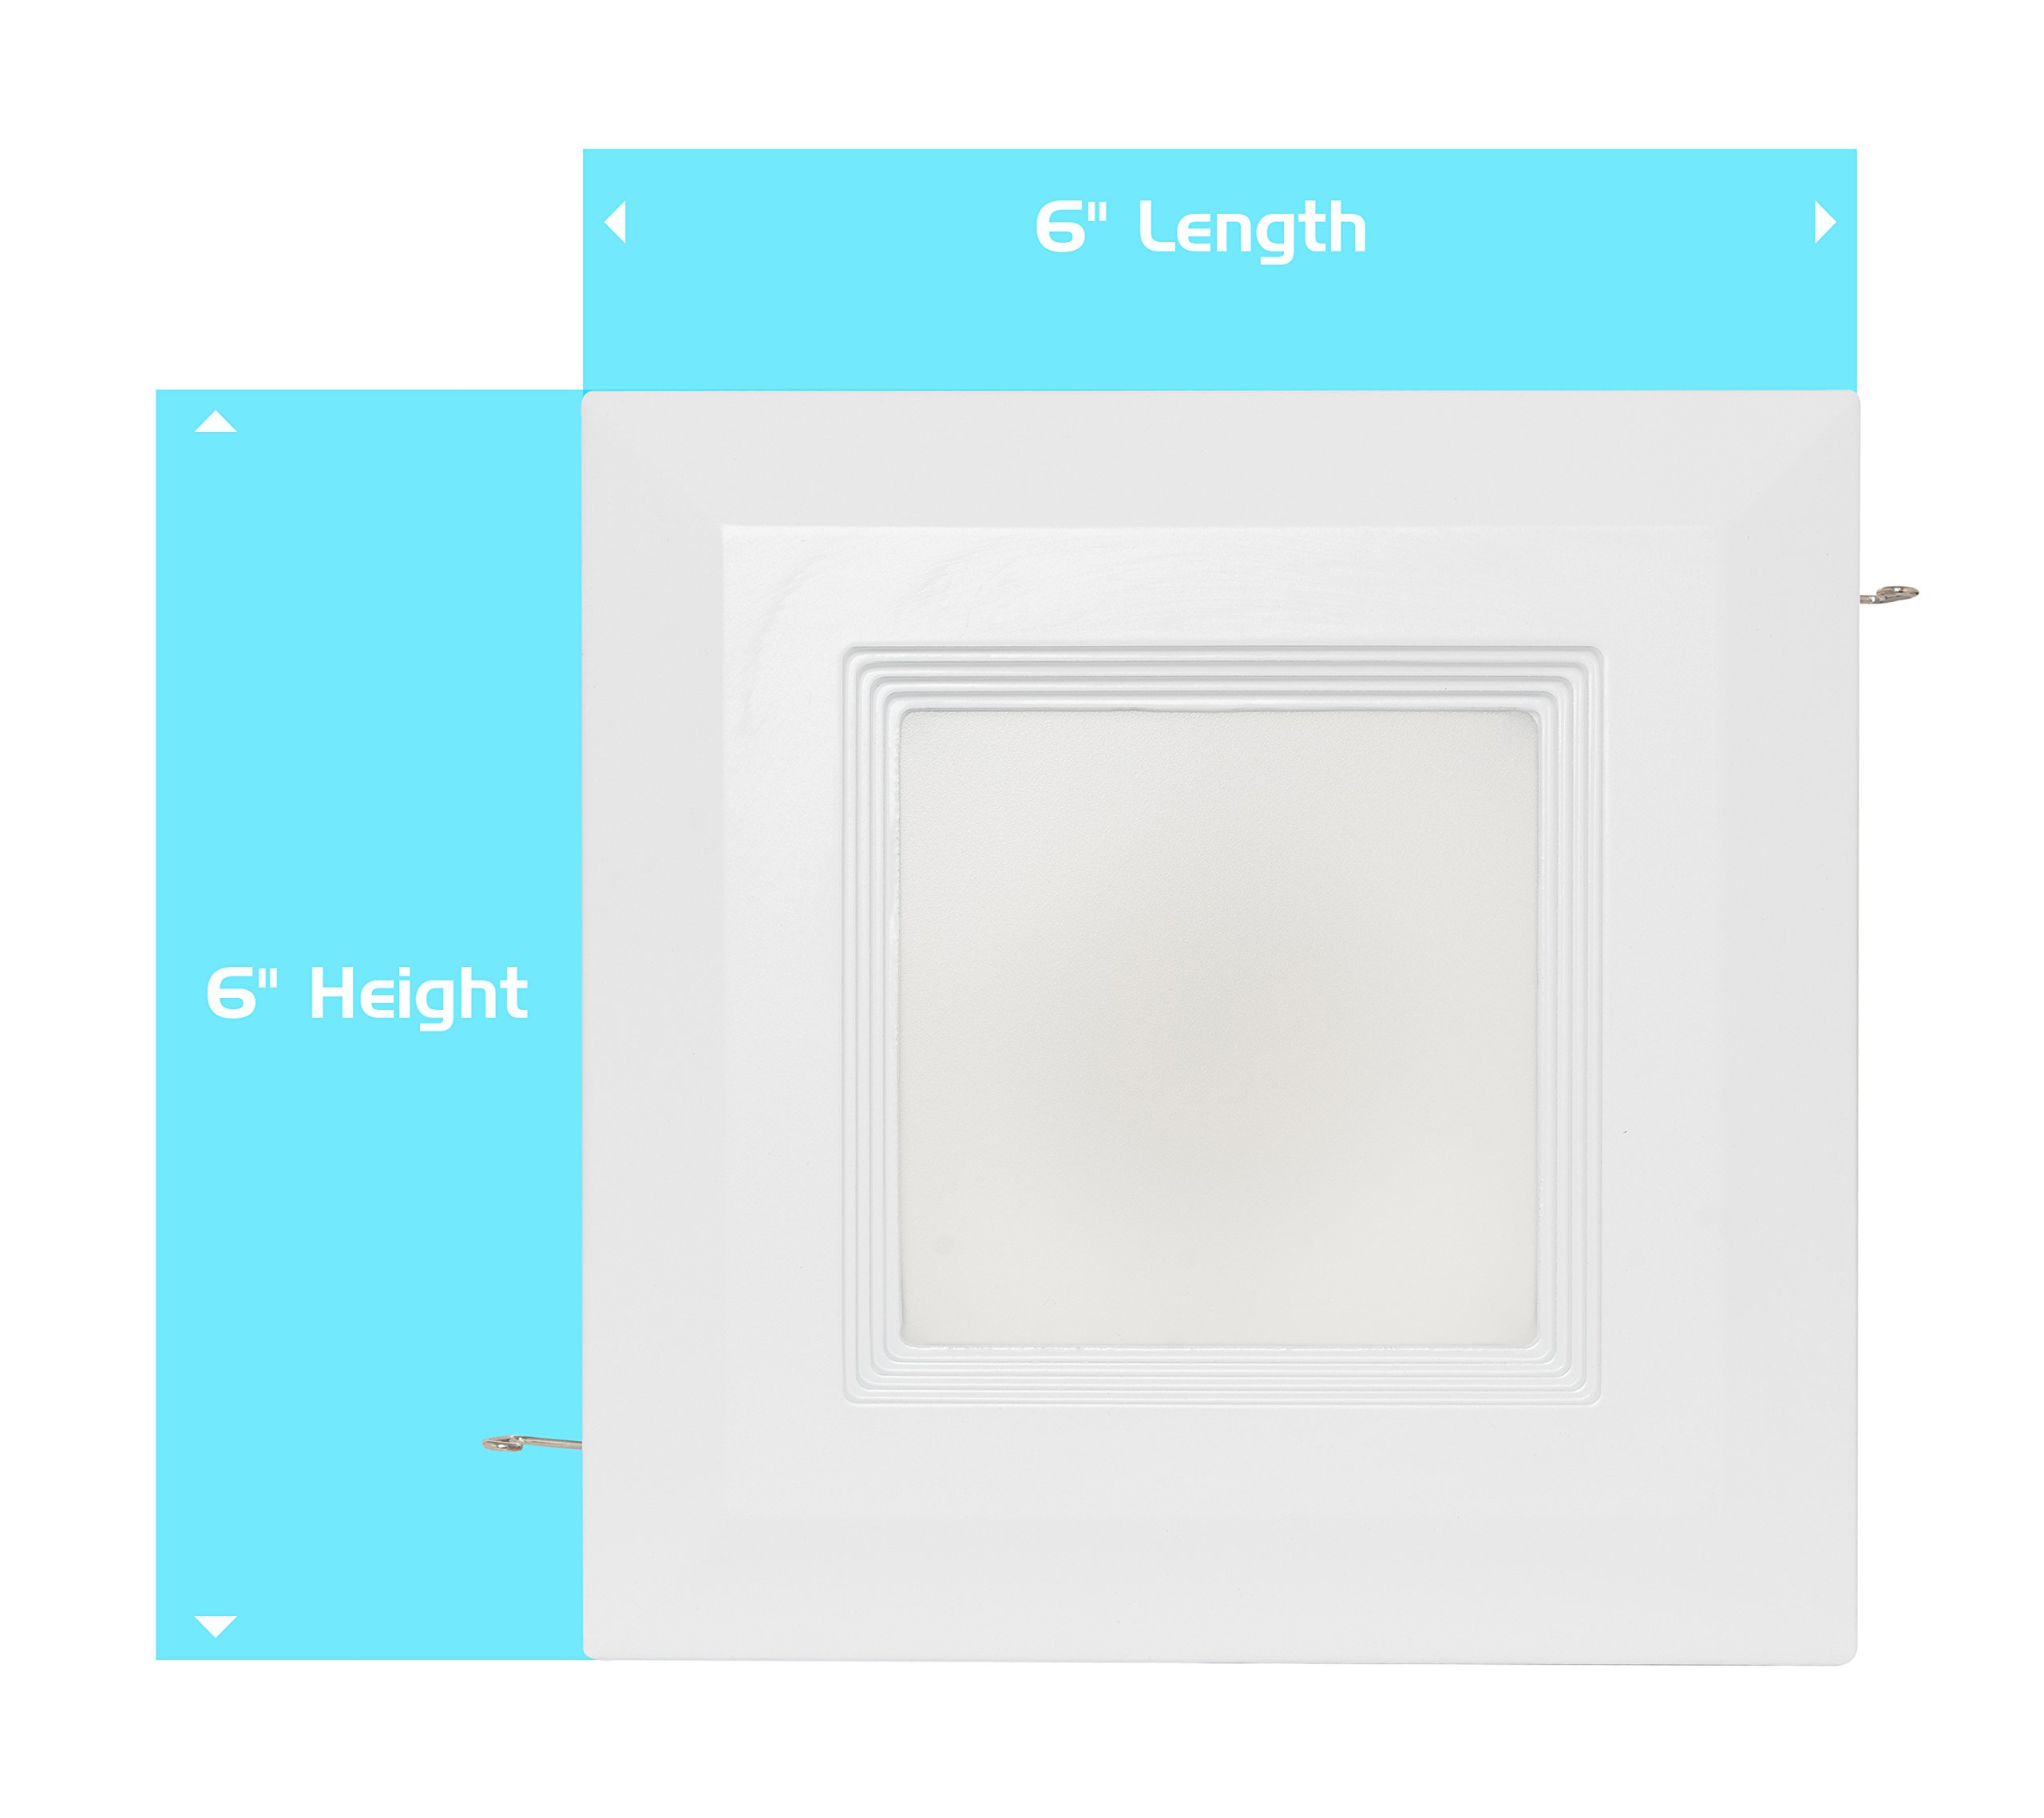 Westgate 15 Watt 6'' Inch Recessed Lighting Kit With Baffle Trim - Square Shaped LED Retrofit Downlight - Premium Dimmable Light Fixture - Best Ceiling Lights - ETL Listed (4100K Cool White, 8 Pack) by Westgate (Image #6)